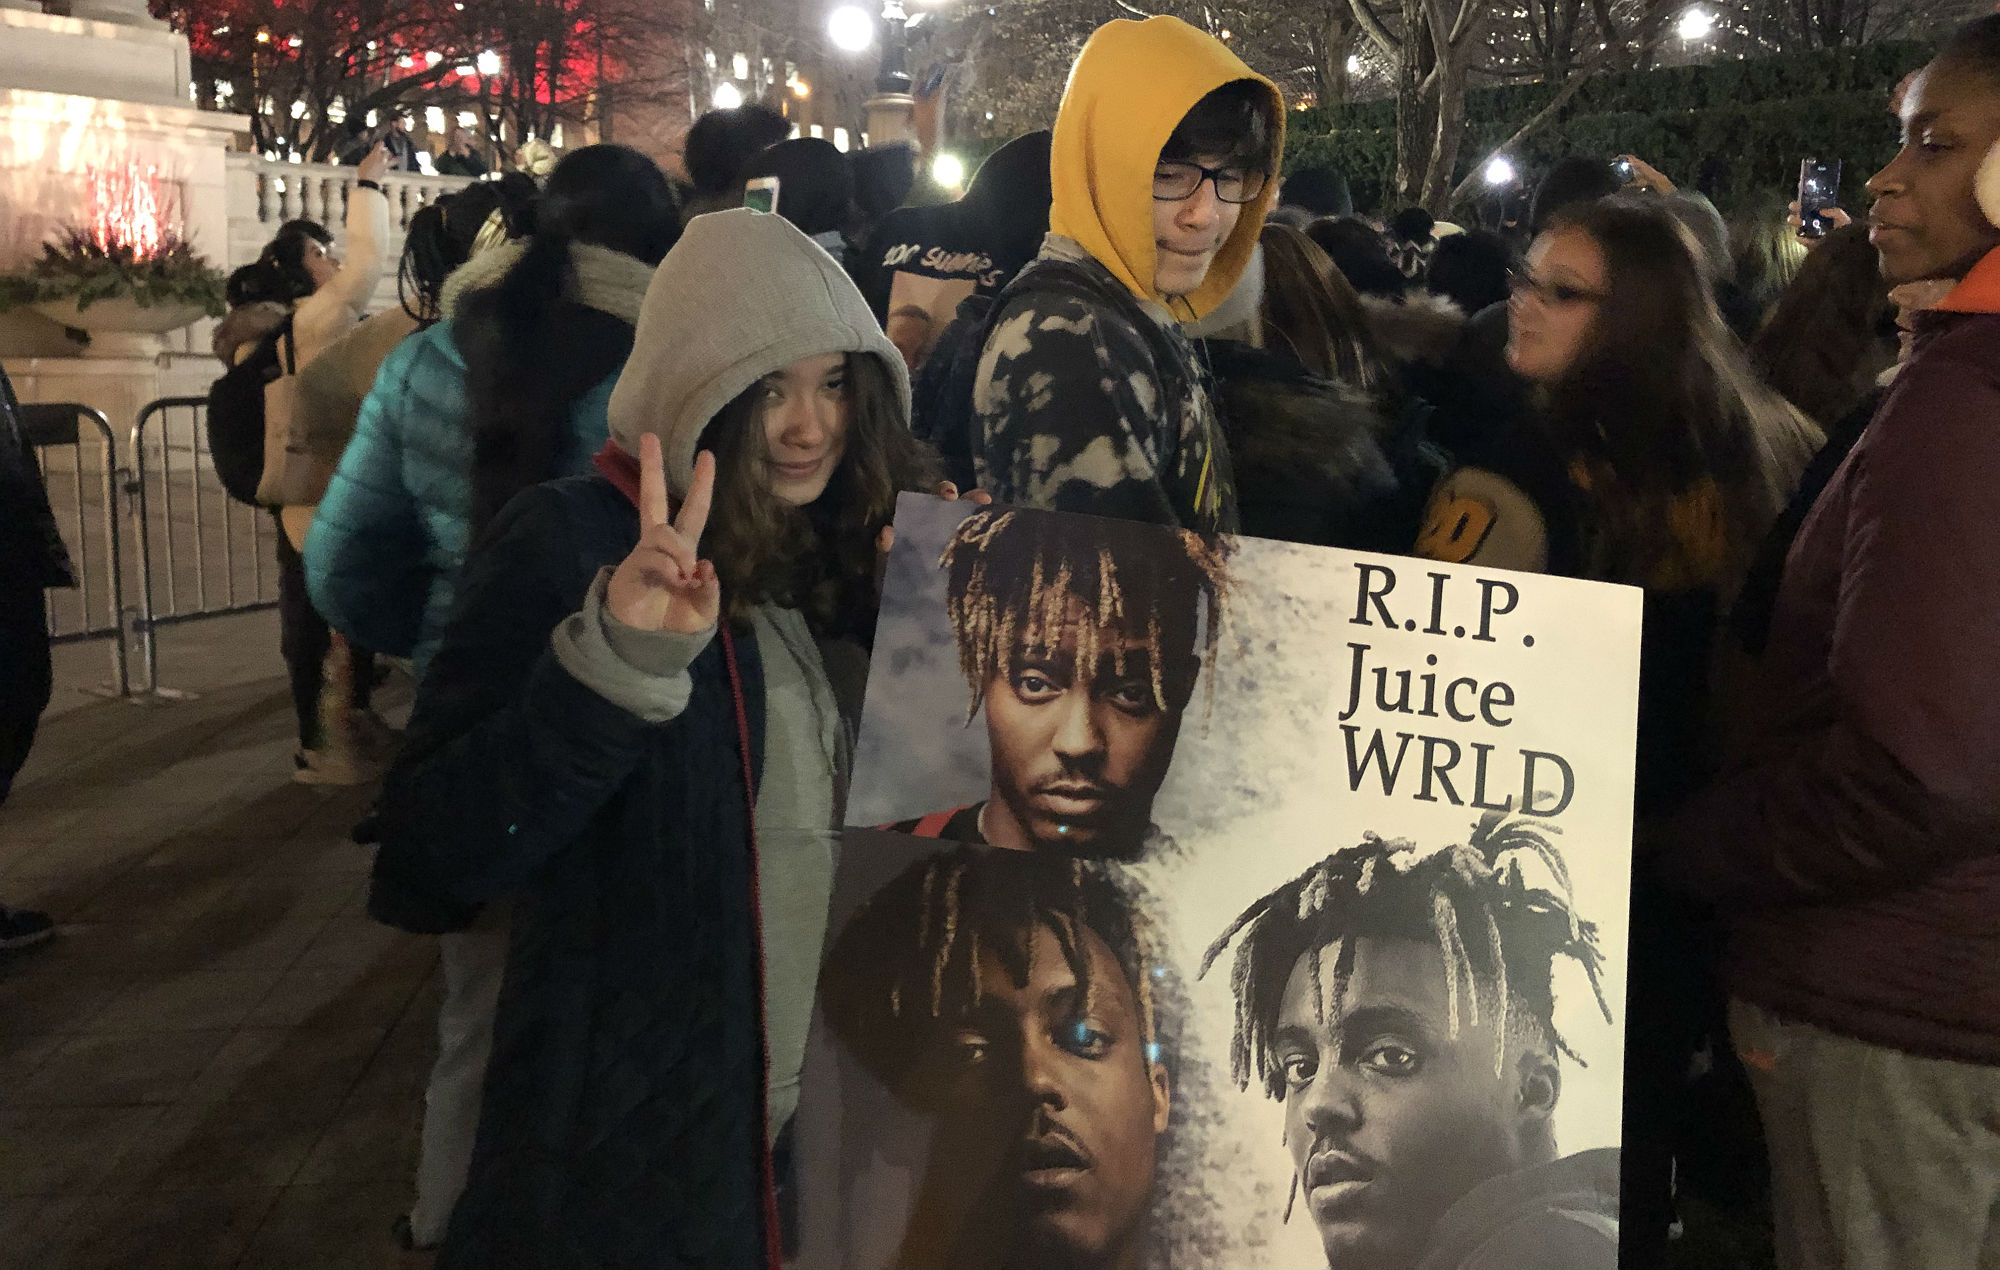 Thousands of fans gather for Juice WRLD vigil on streets of Chicago